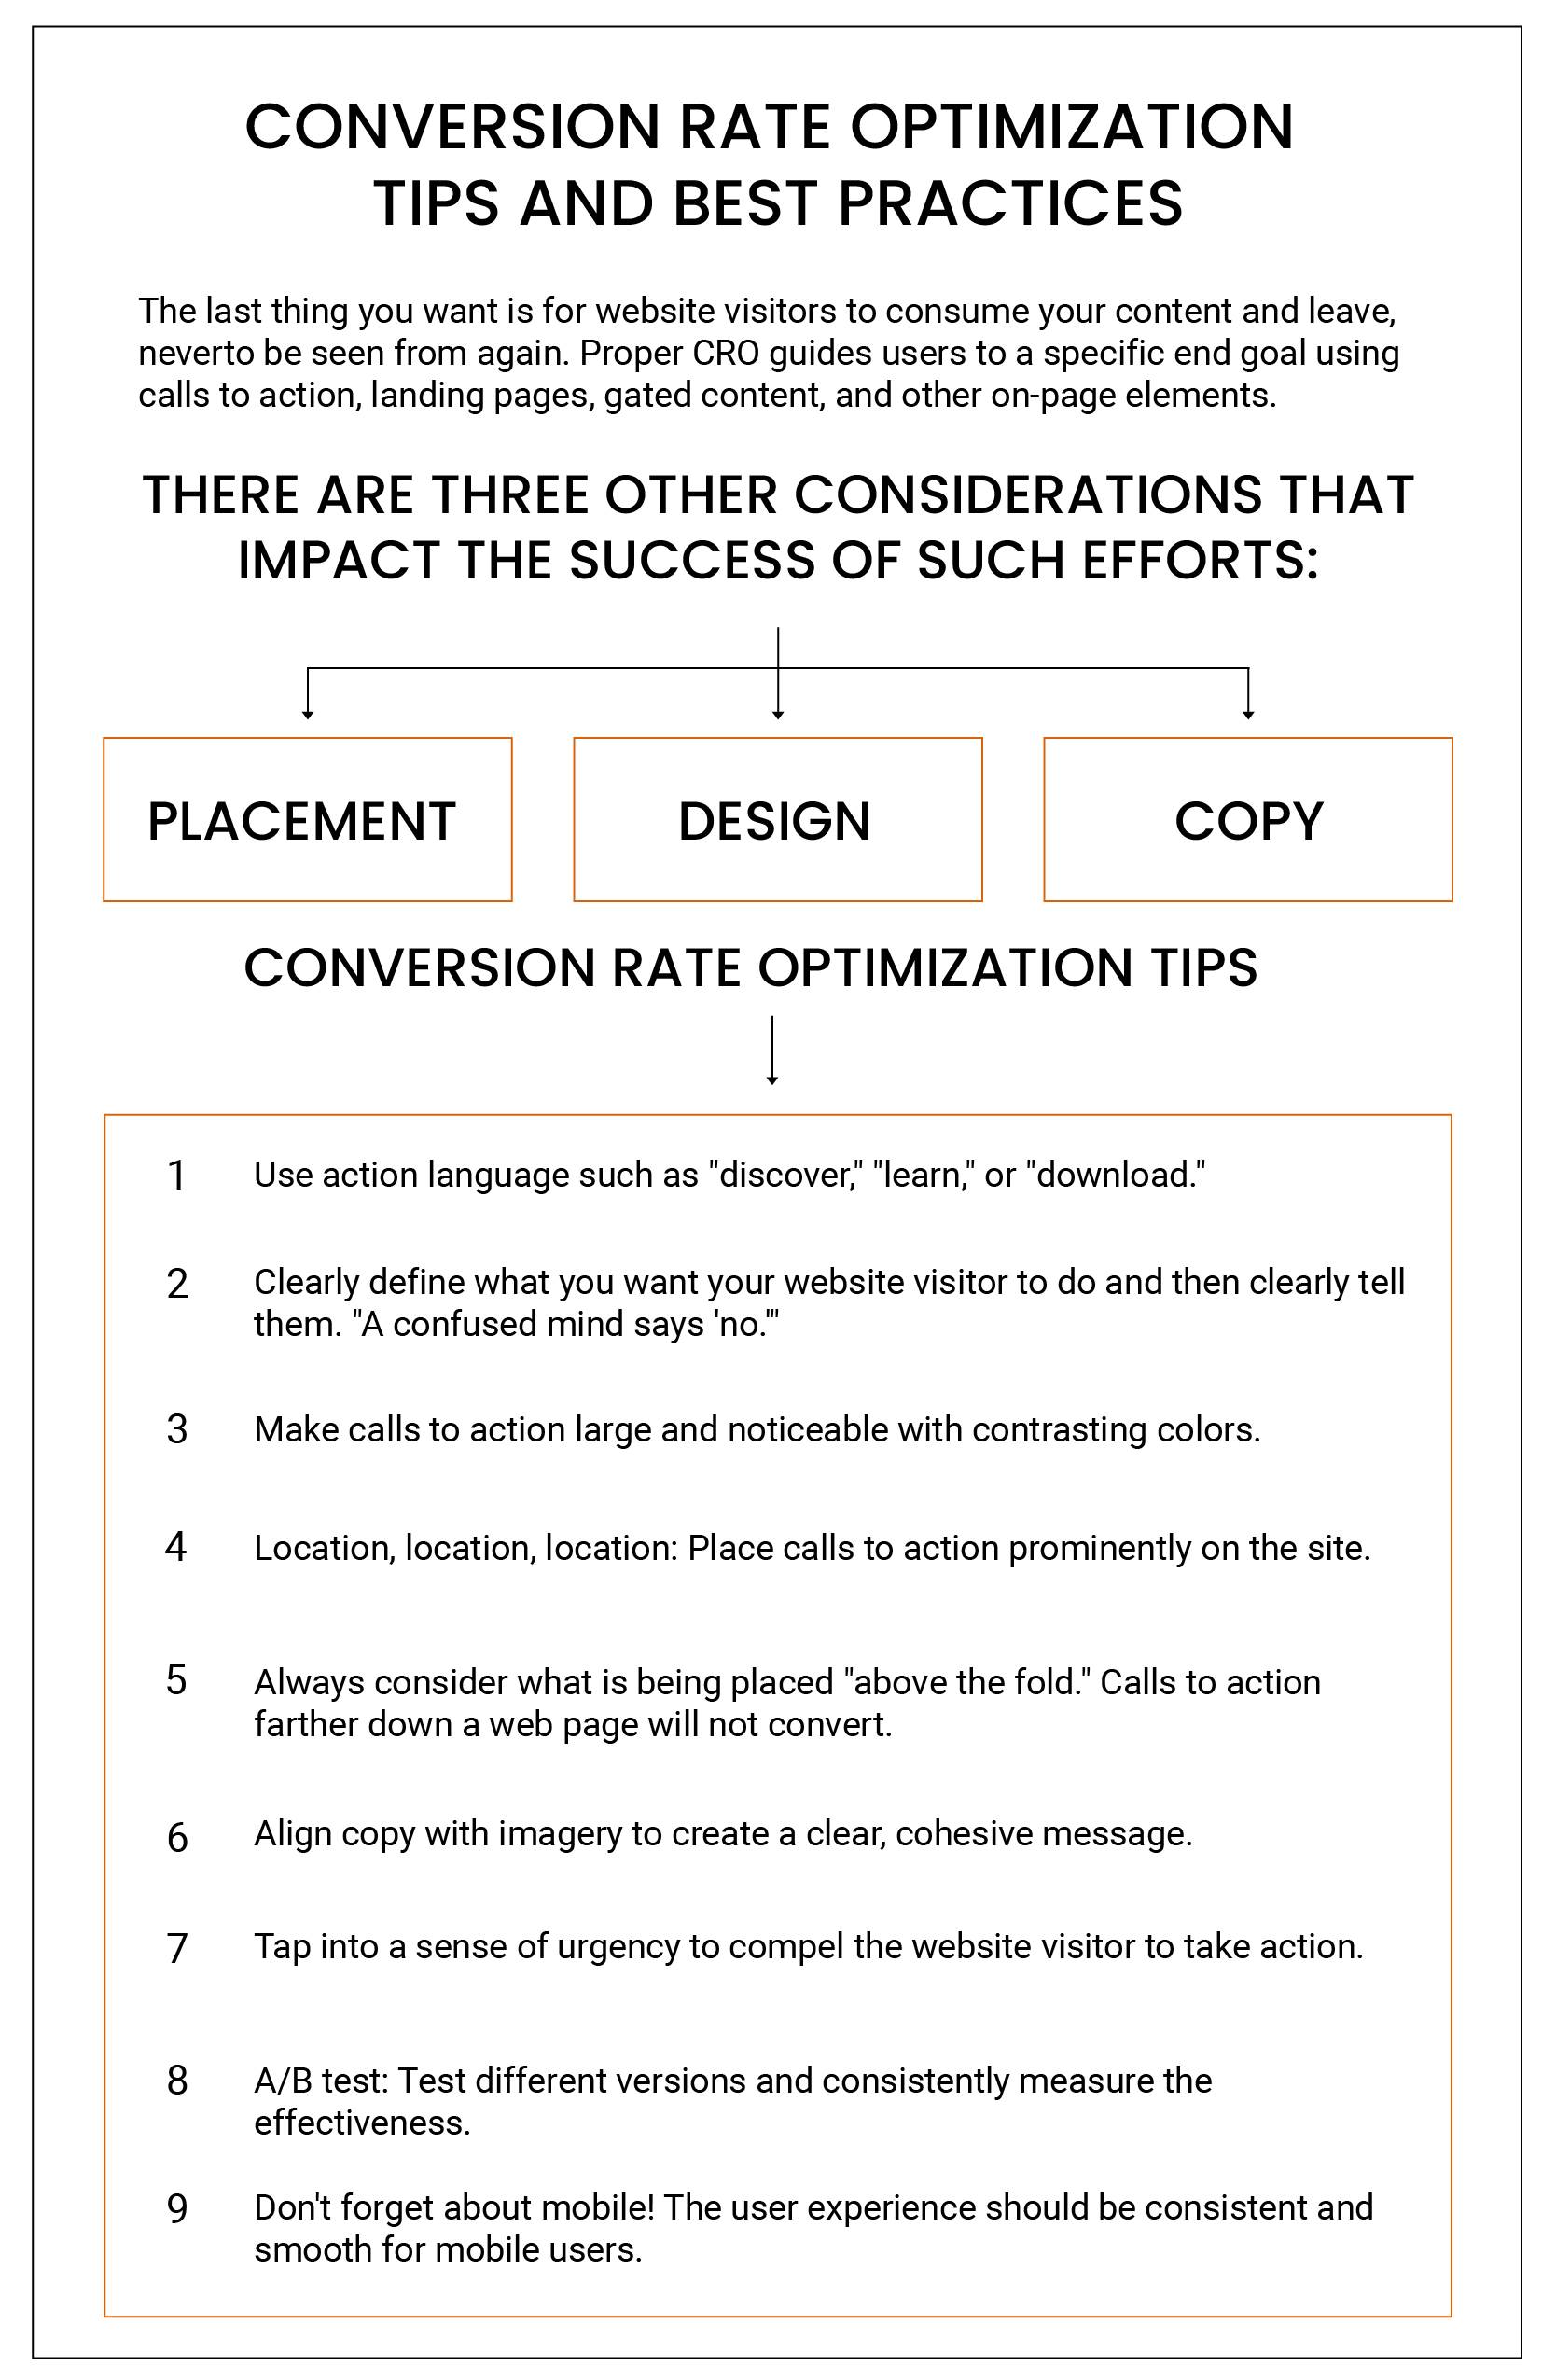 conversion optimization tips and best practices infographic